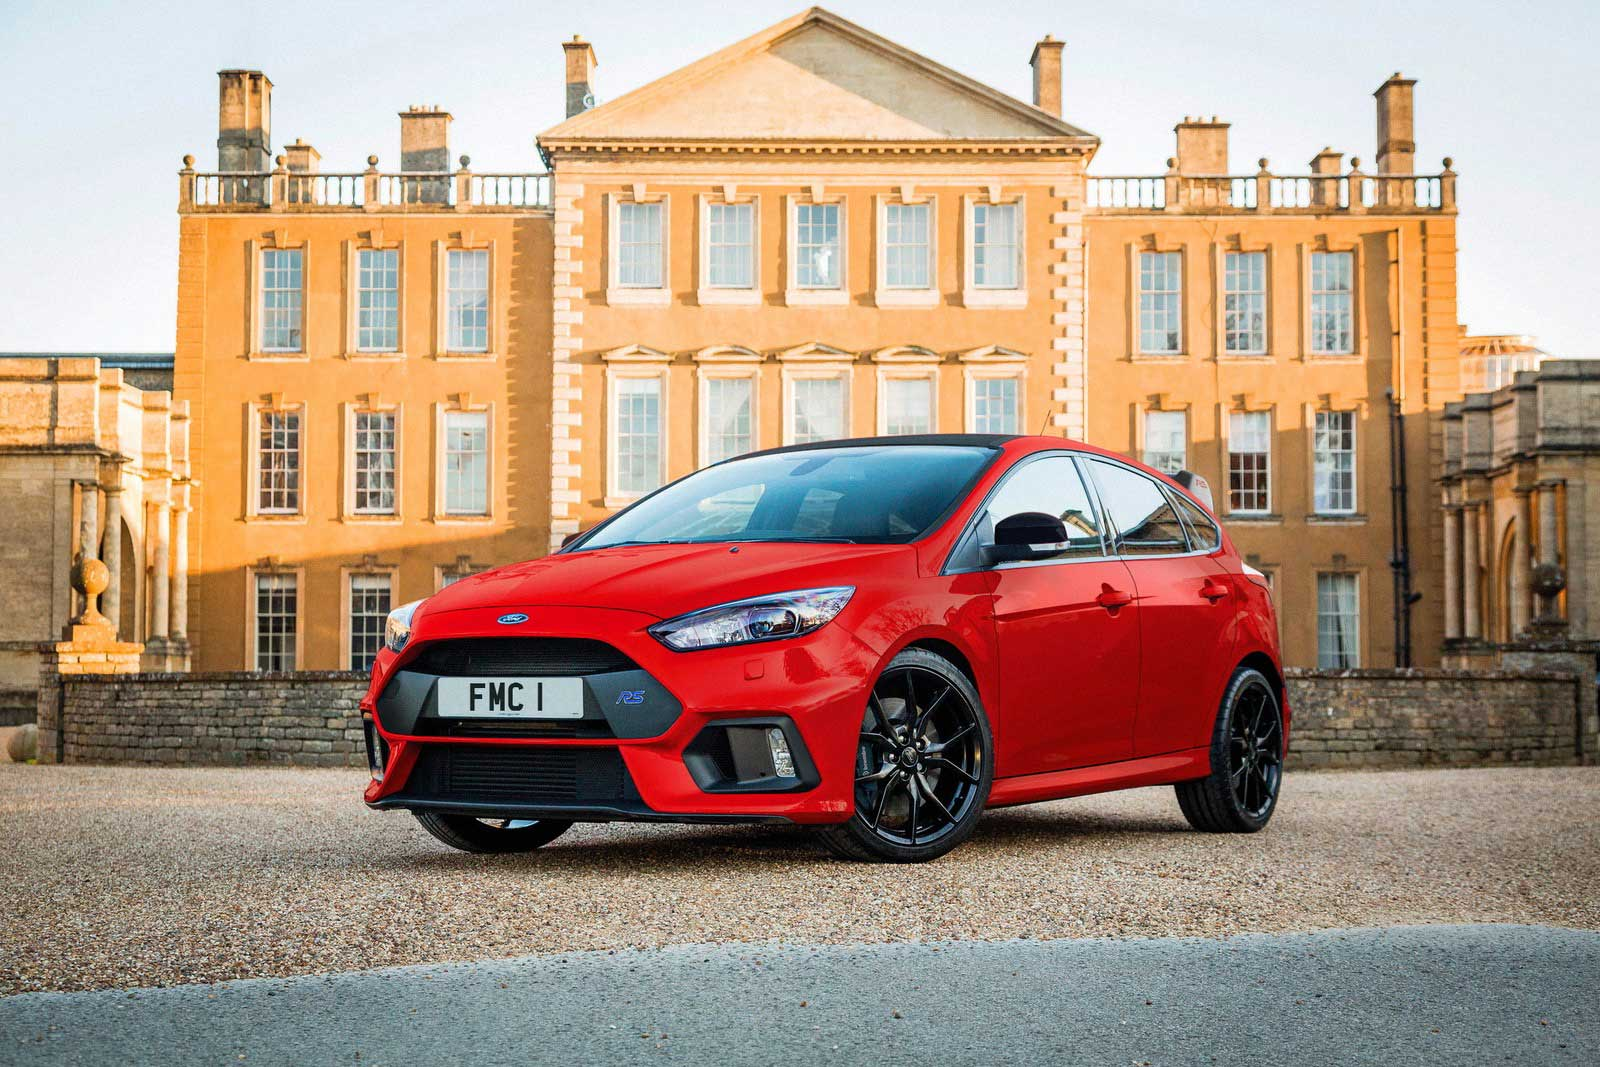 Ford Foсus RS